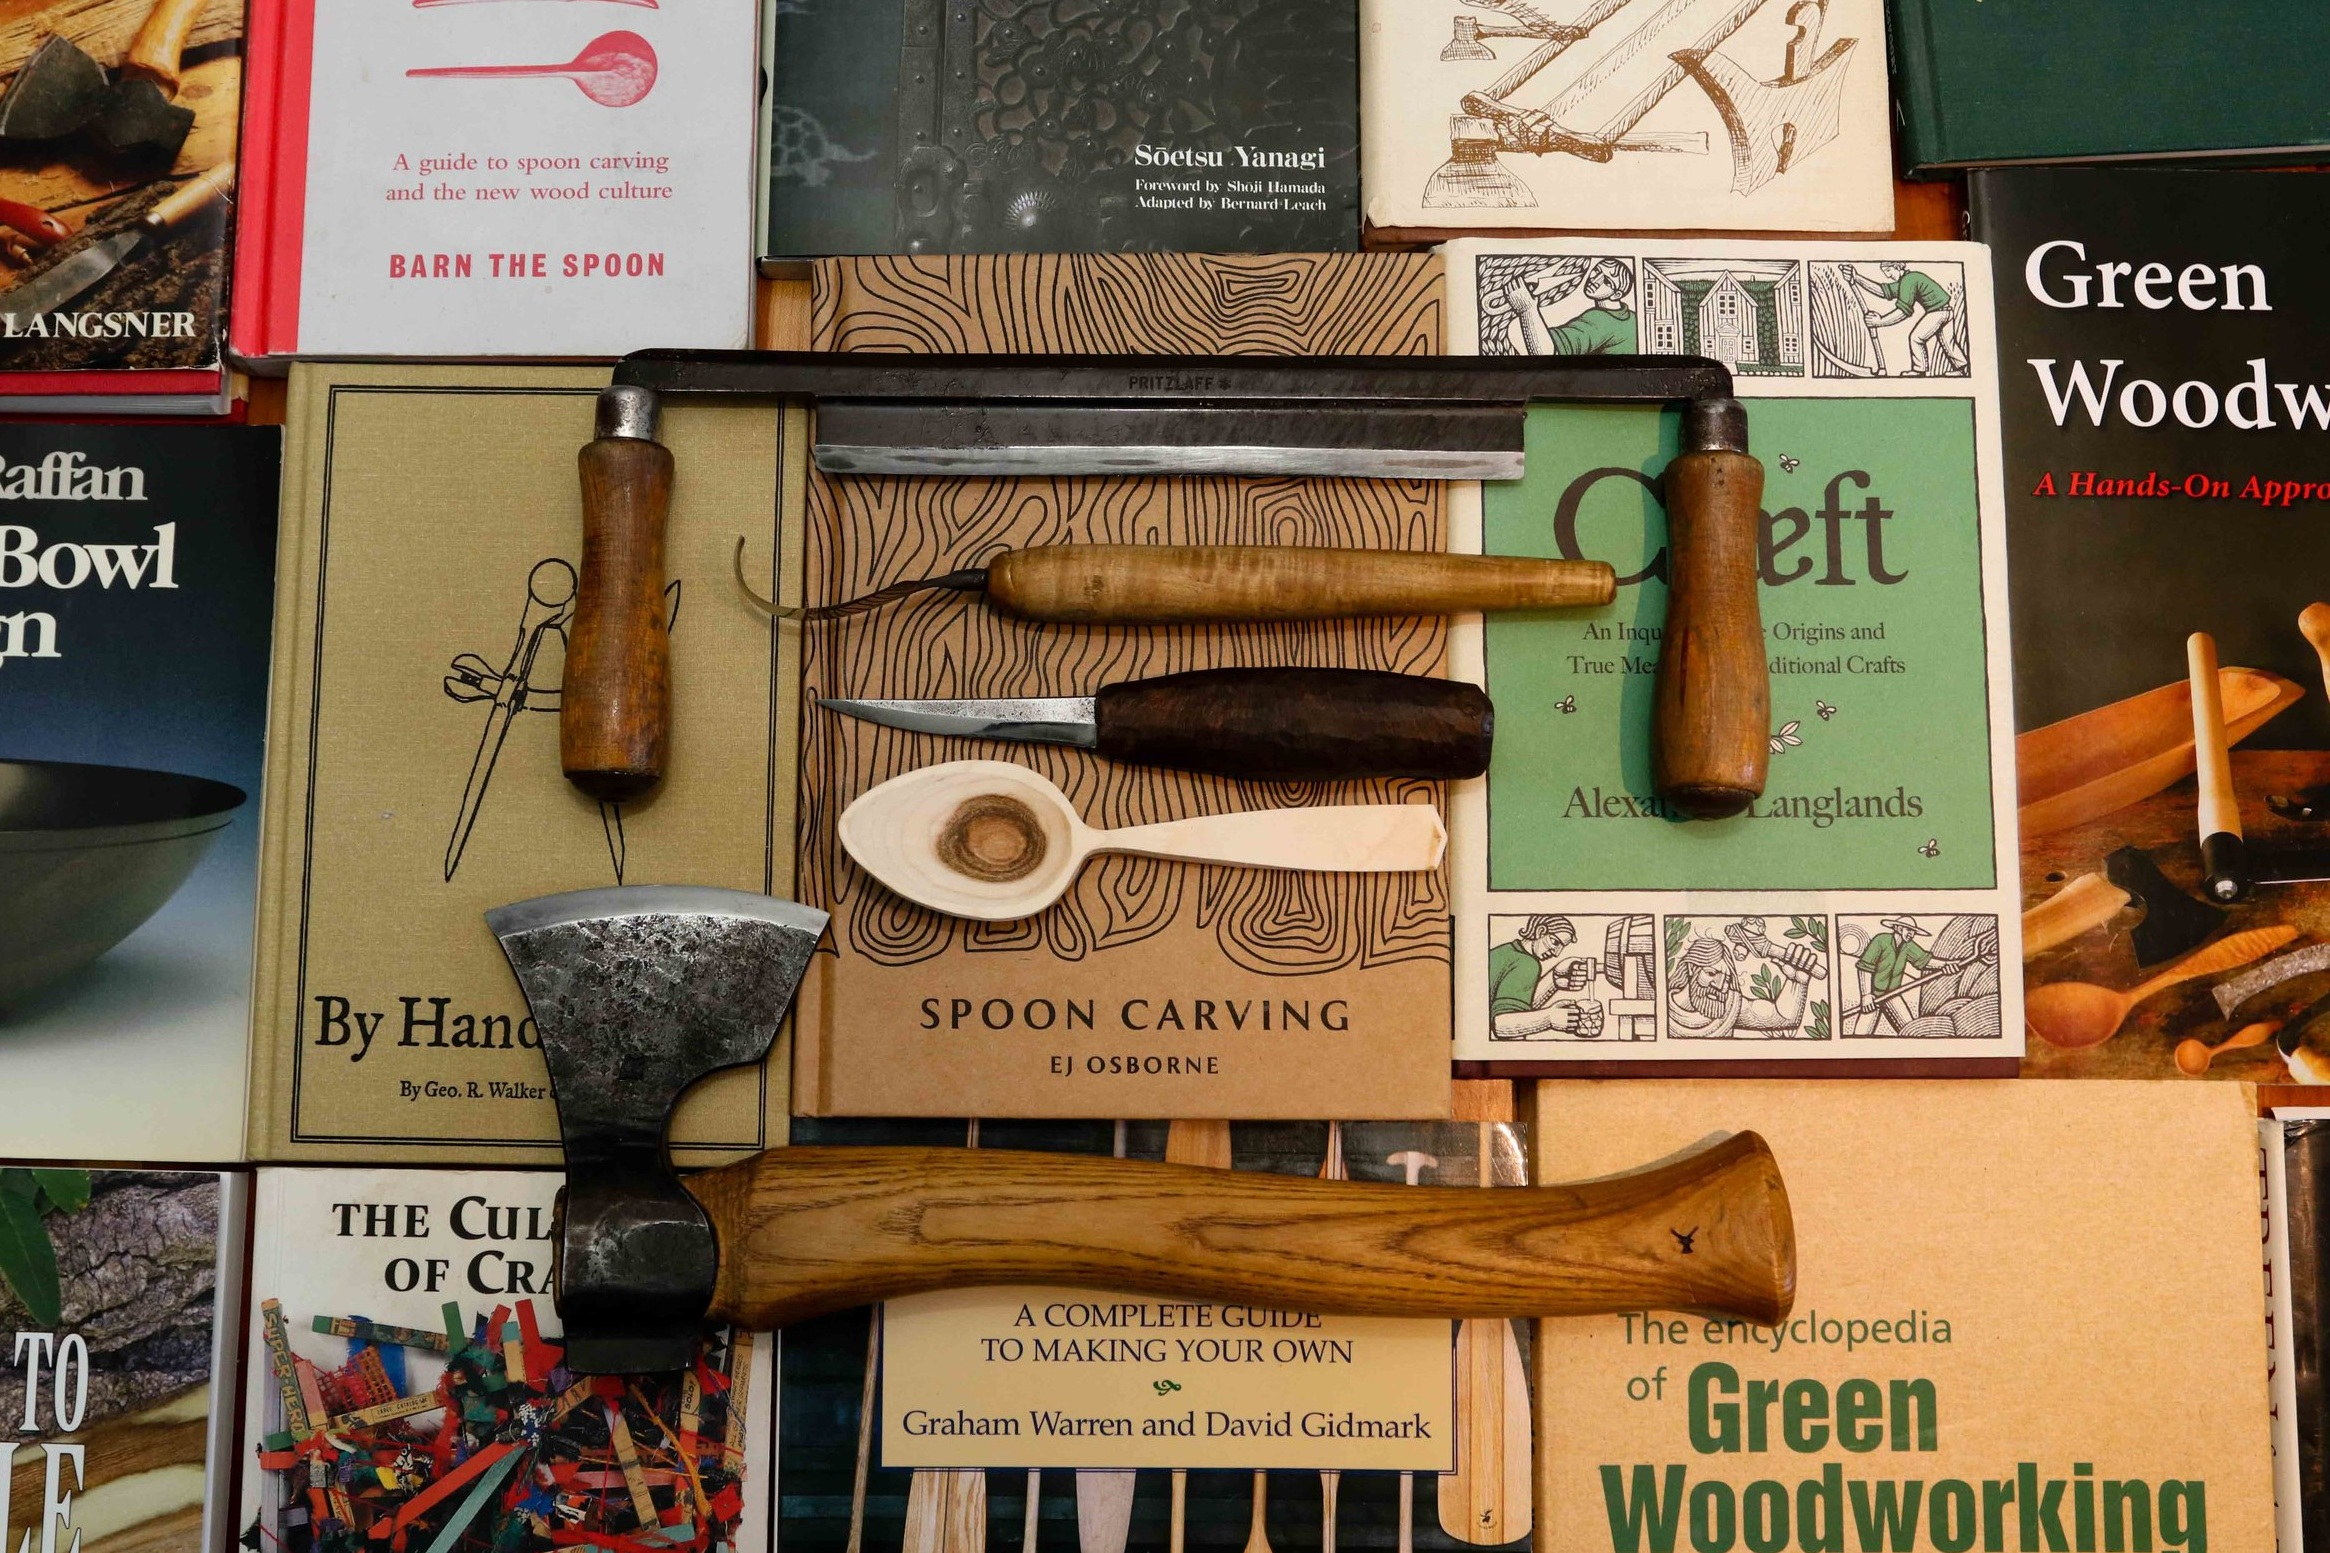 Books+axe+knife+tools+woodworking